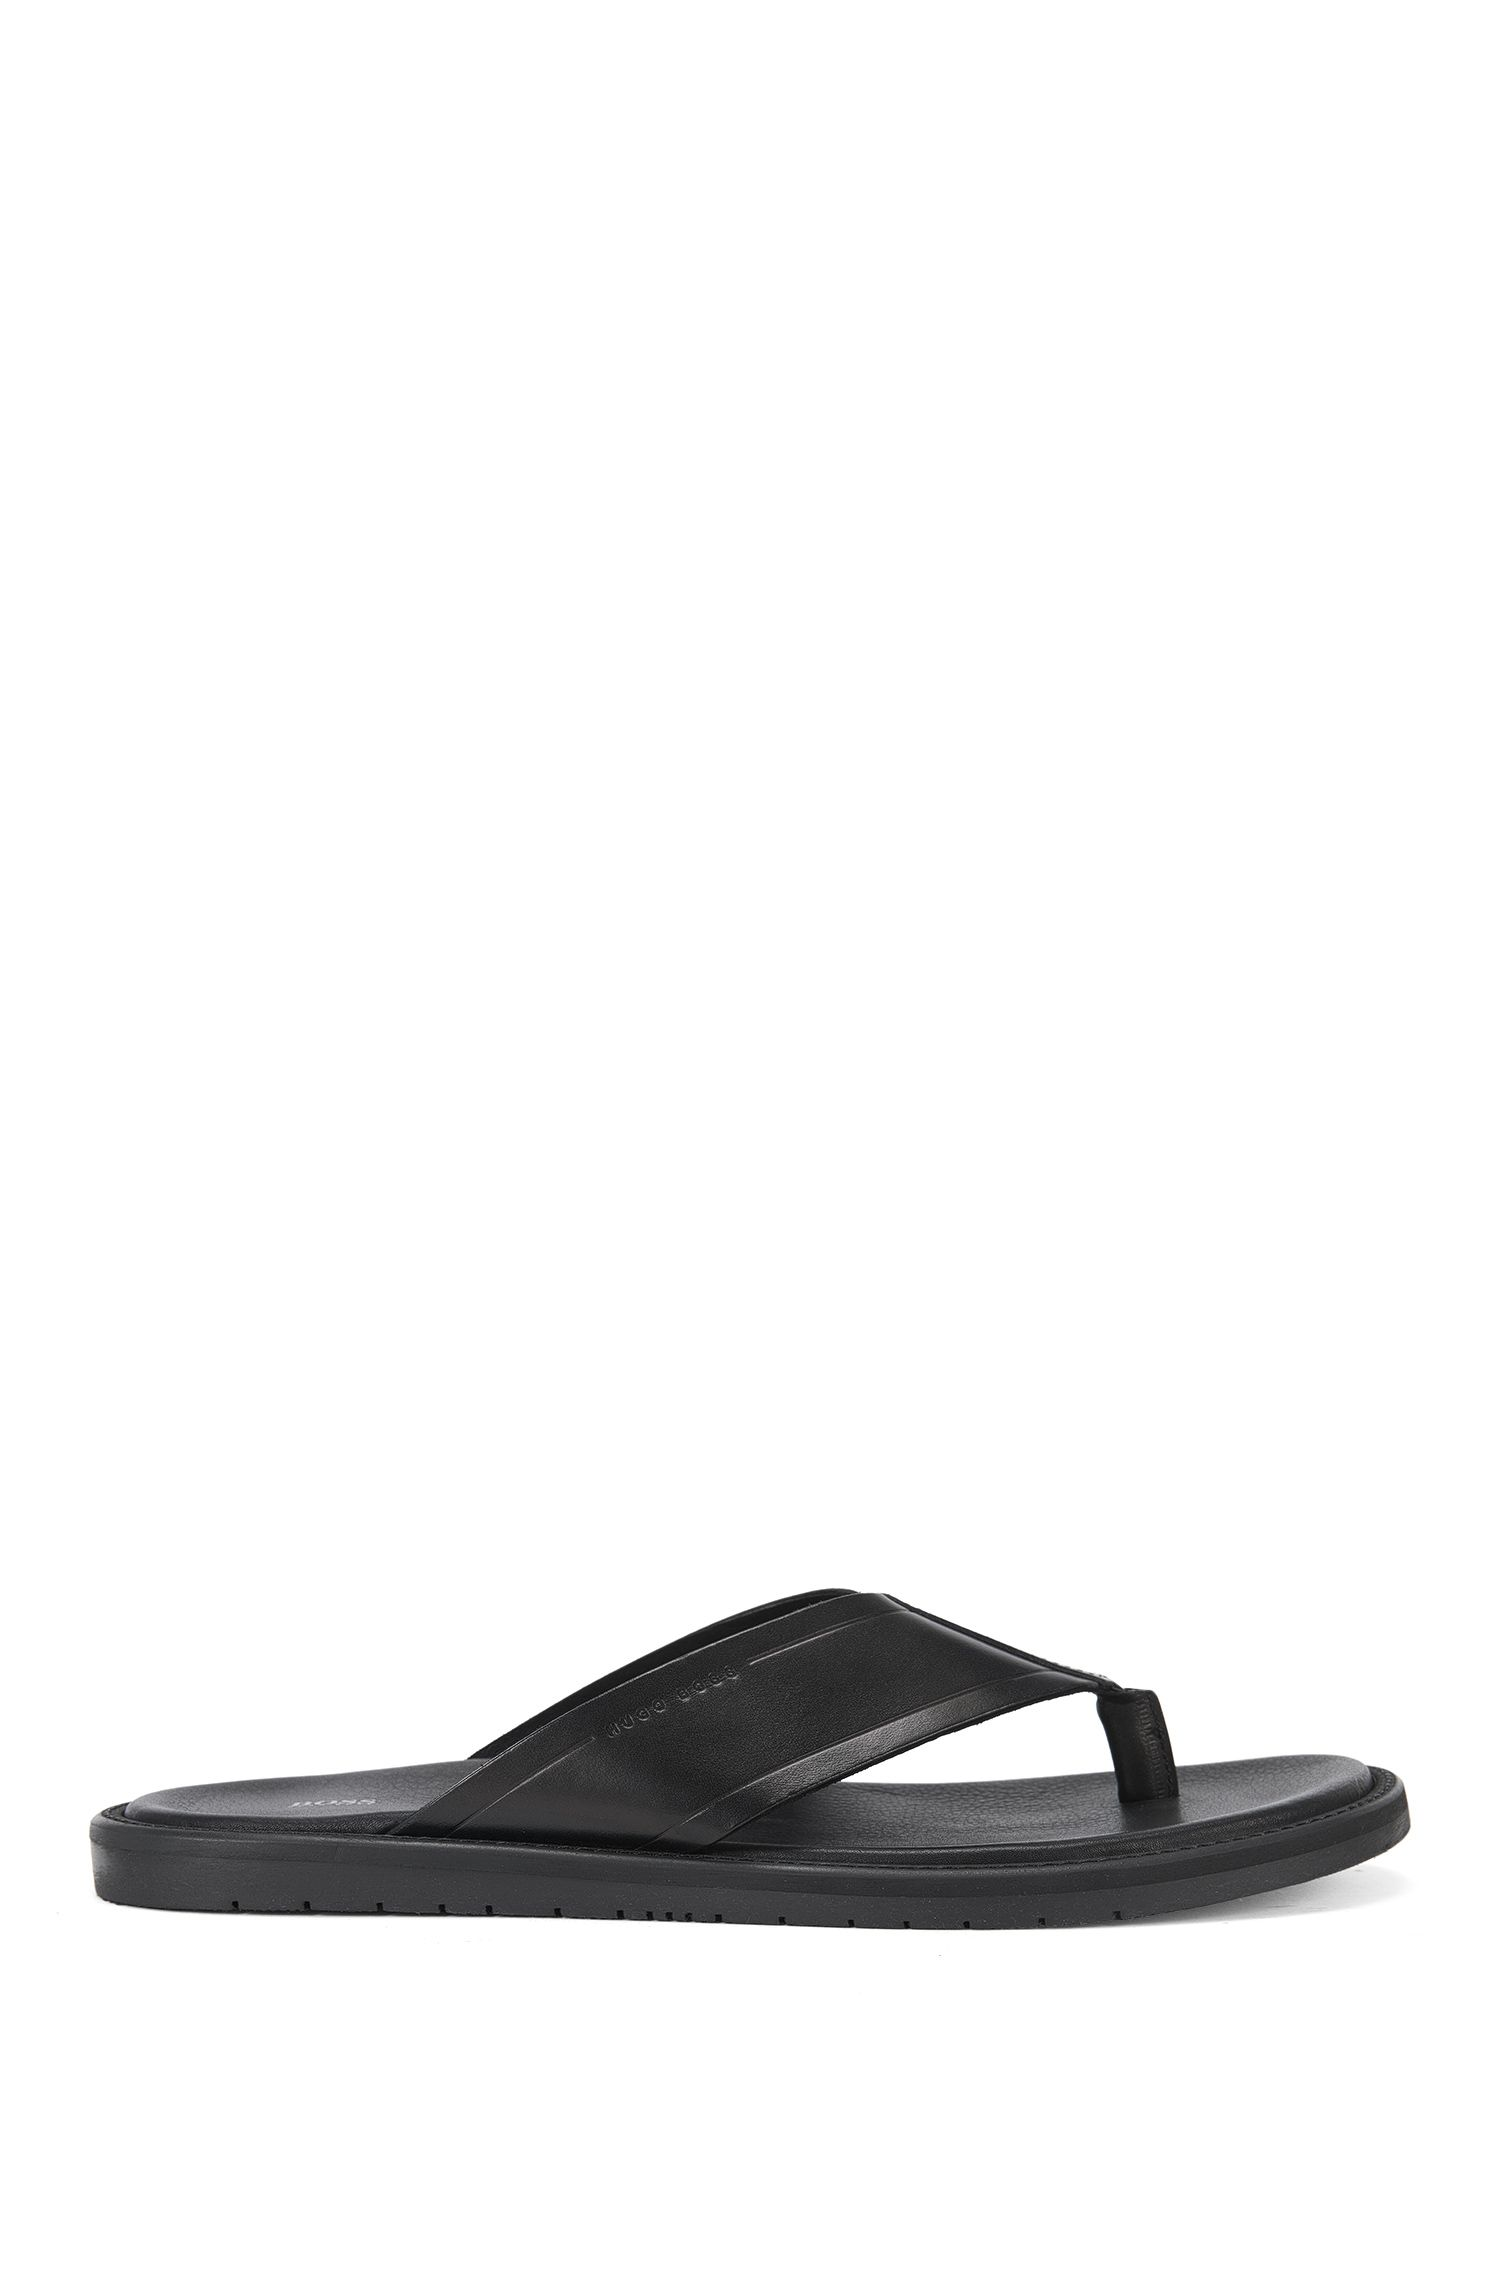 Plain toe-separator sandals in leather: 'Hamptons_Thon_Itth'